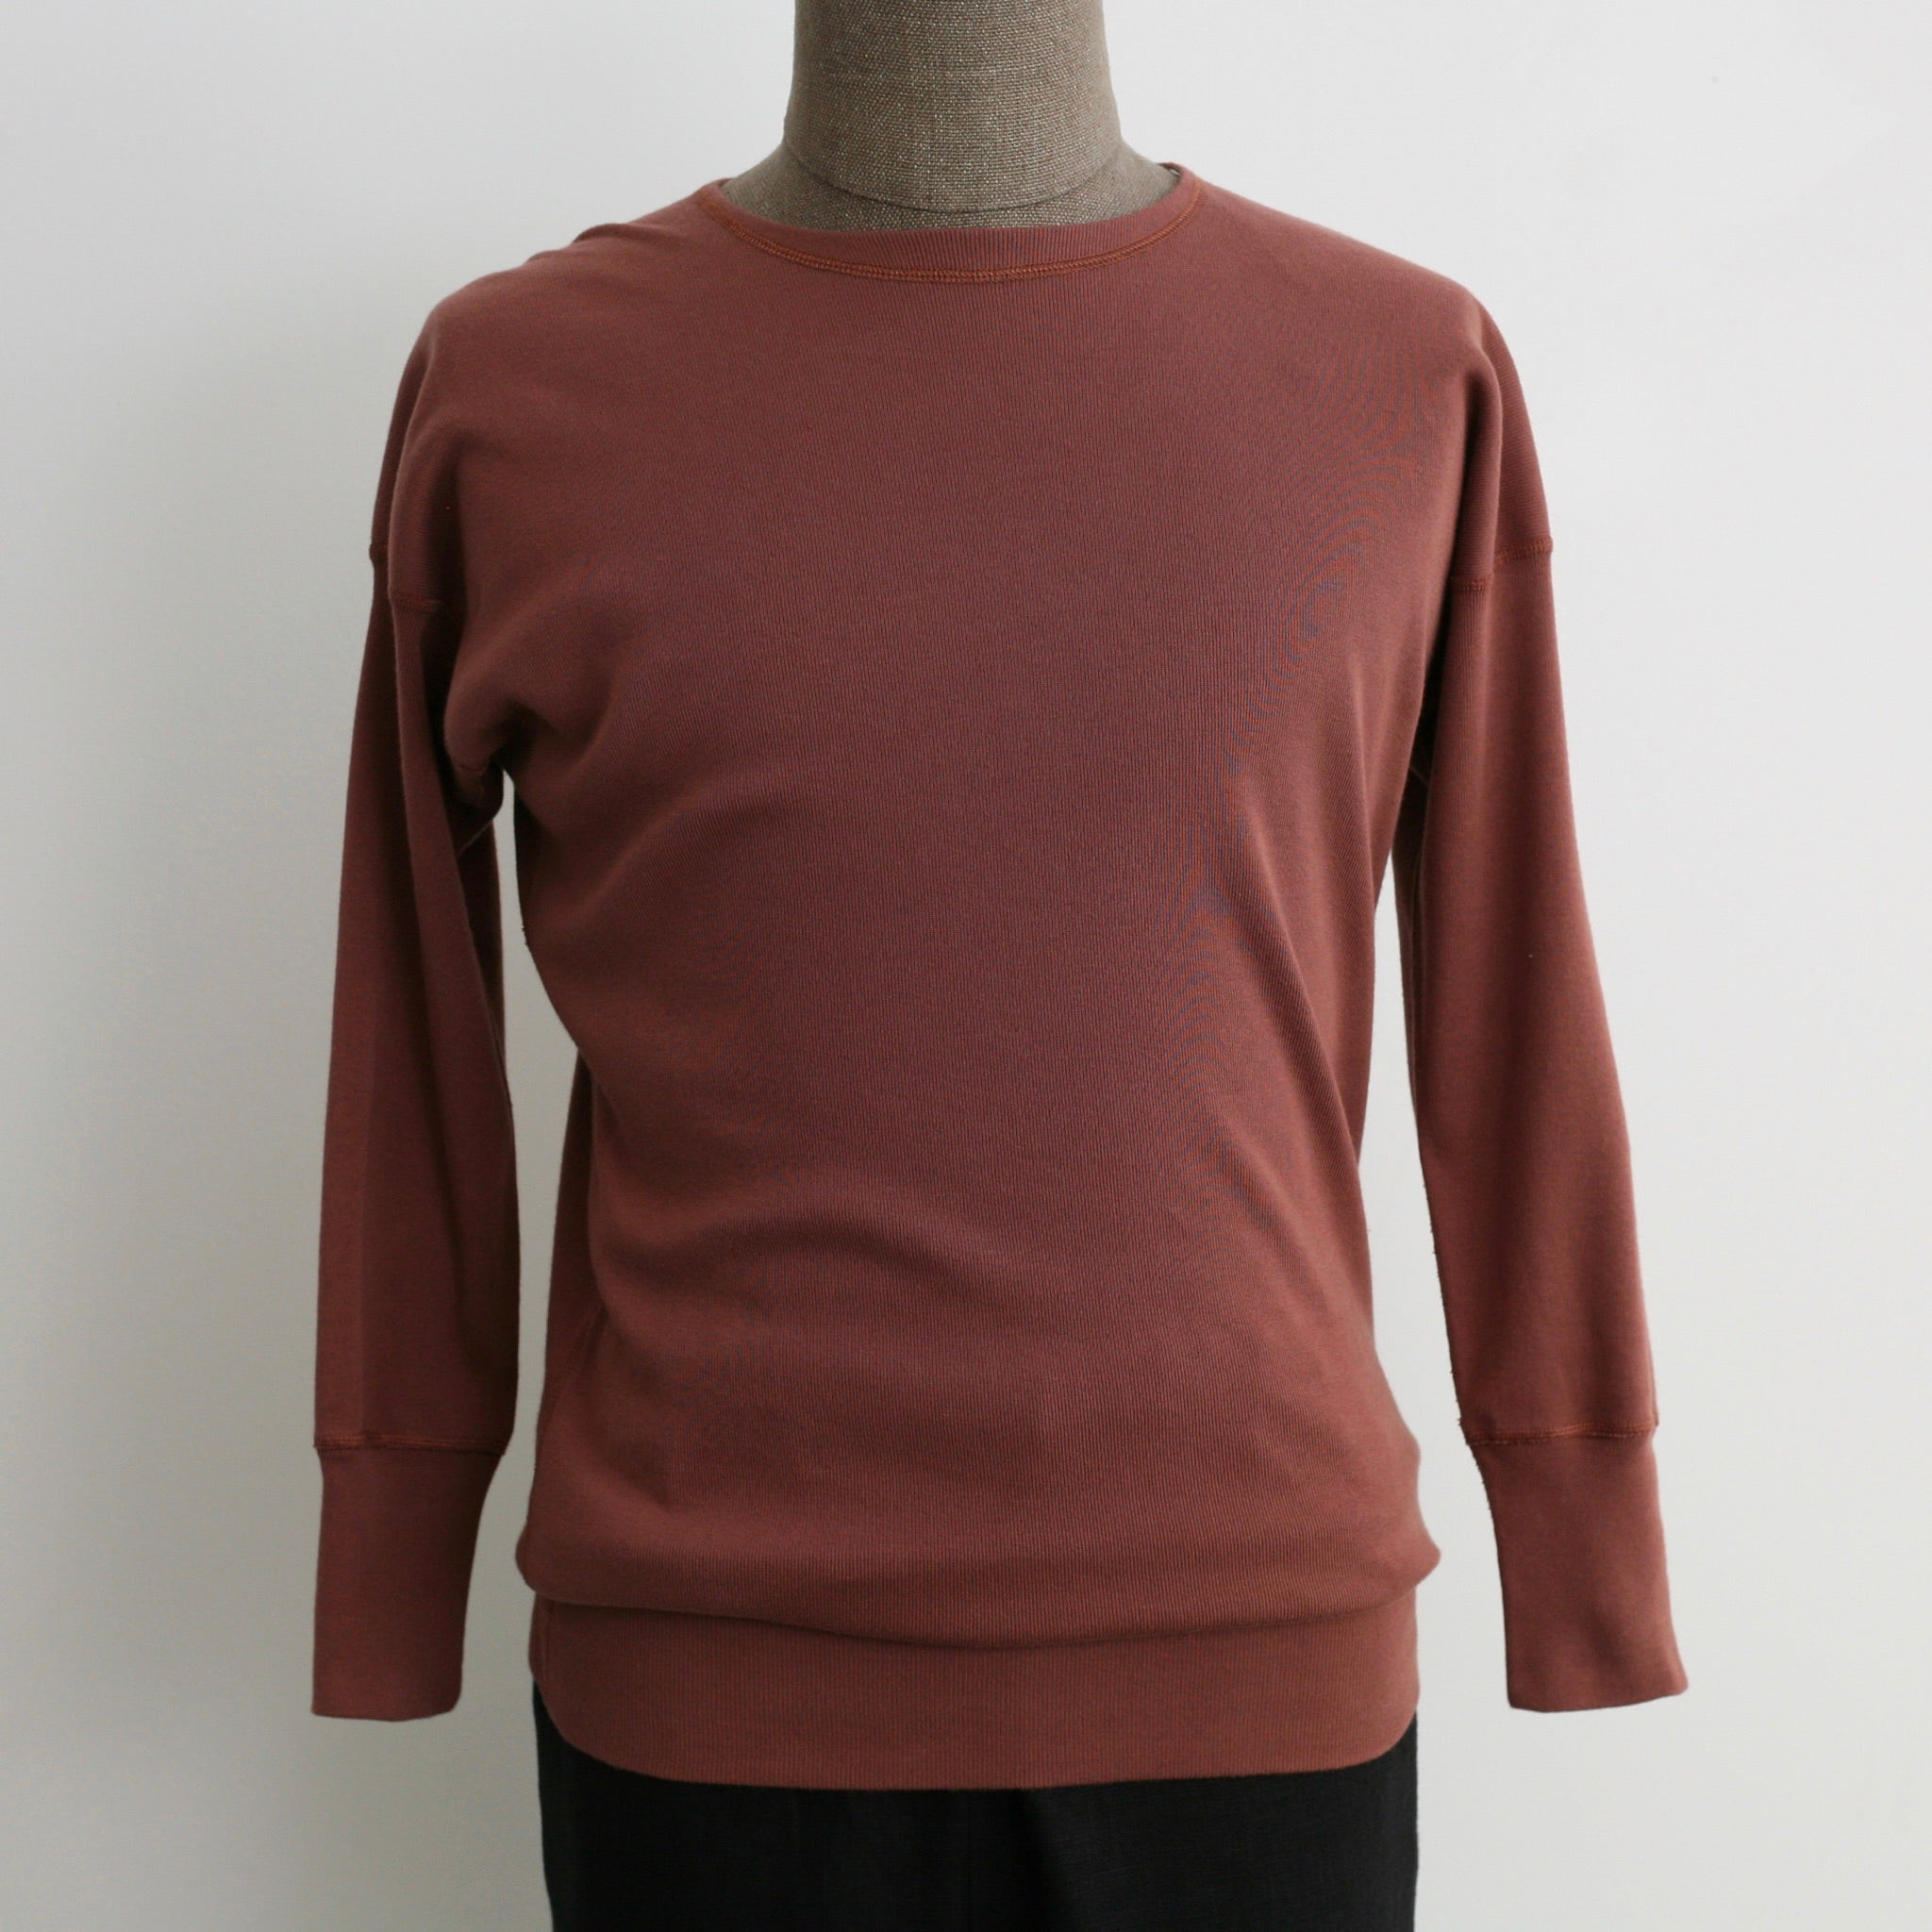 US006 Crew Neck Long Sleeve Sweat Shirt in Rosewood